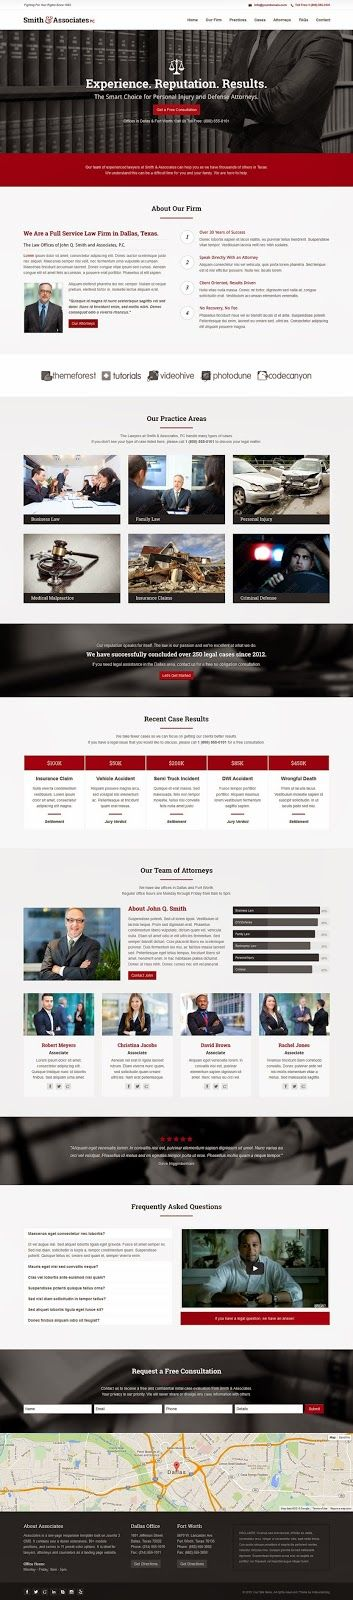 Associates Lawyer and Attorney One Page Joomla Template: This One page #Joomla theme is perfect for #lawyers, attorneys, counselors, law offices and law firms. #website